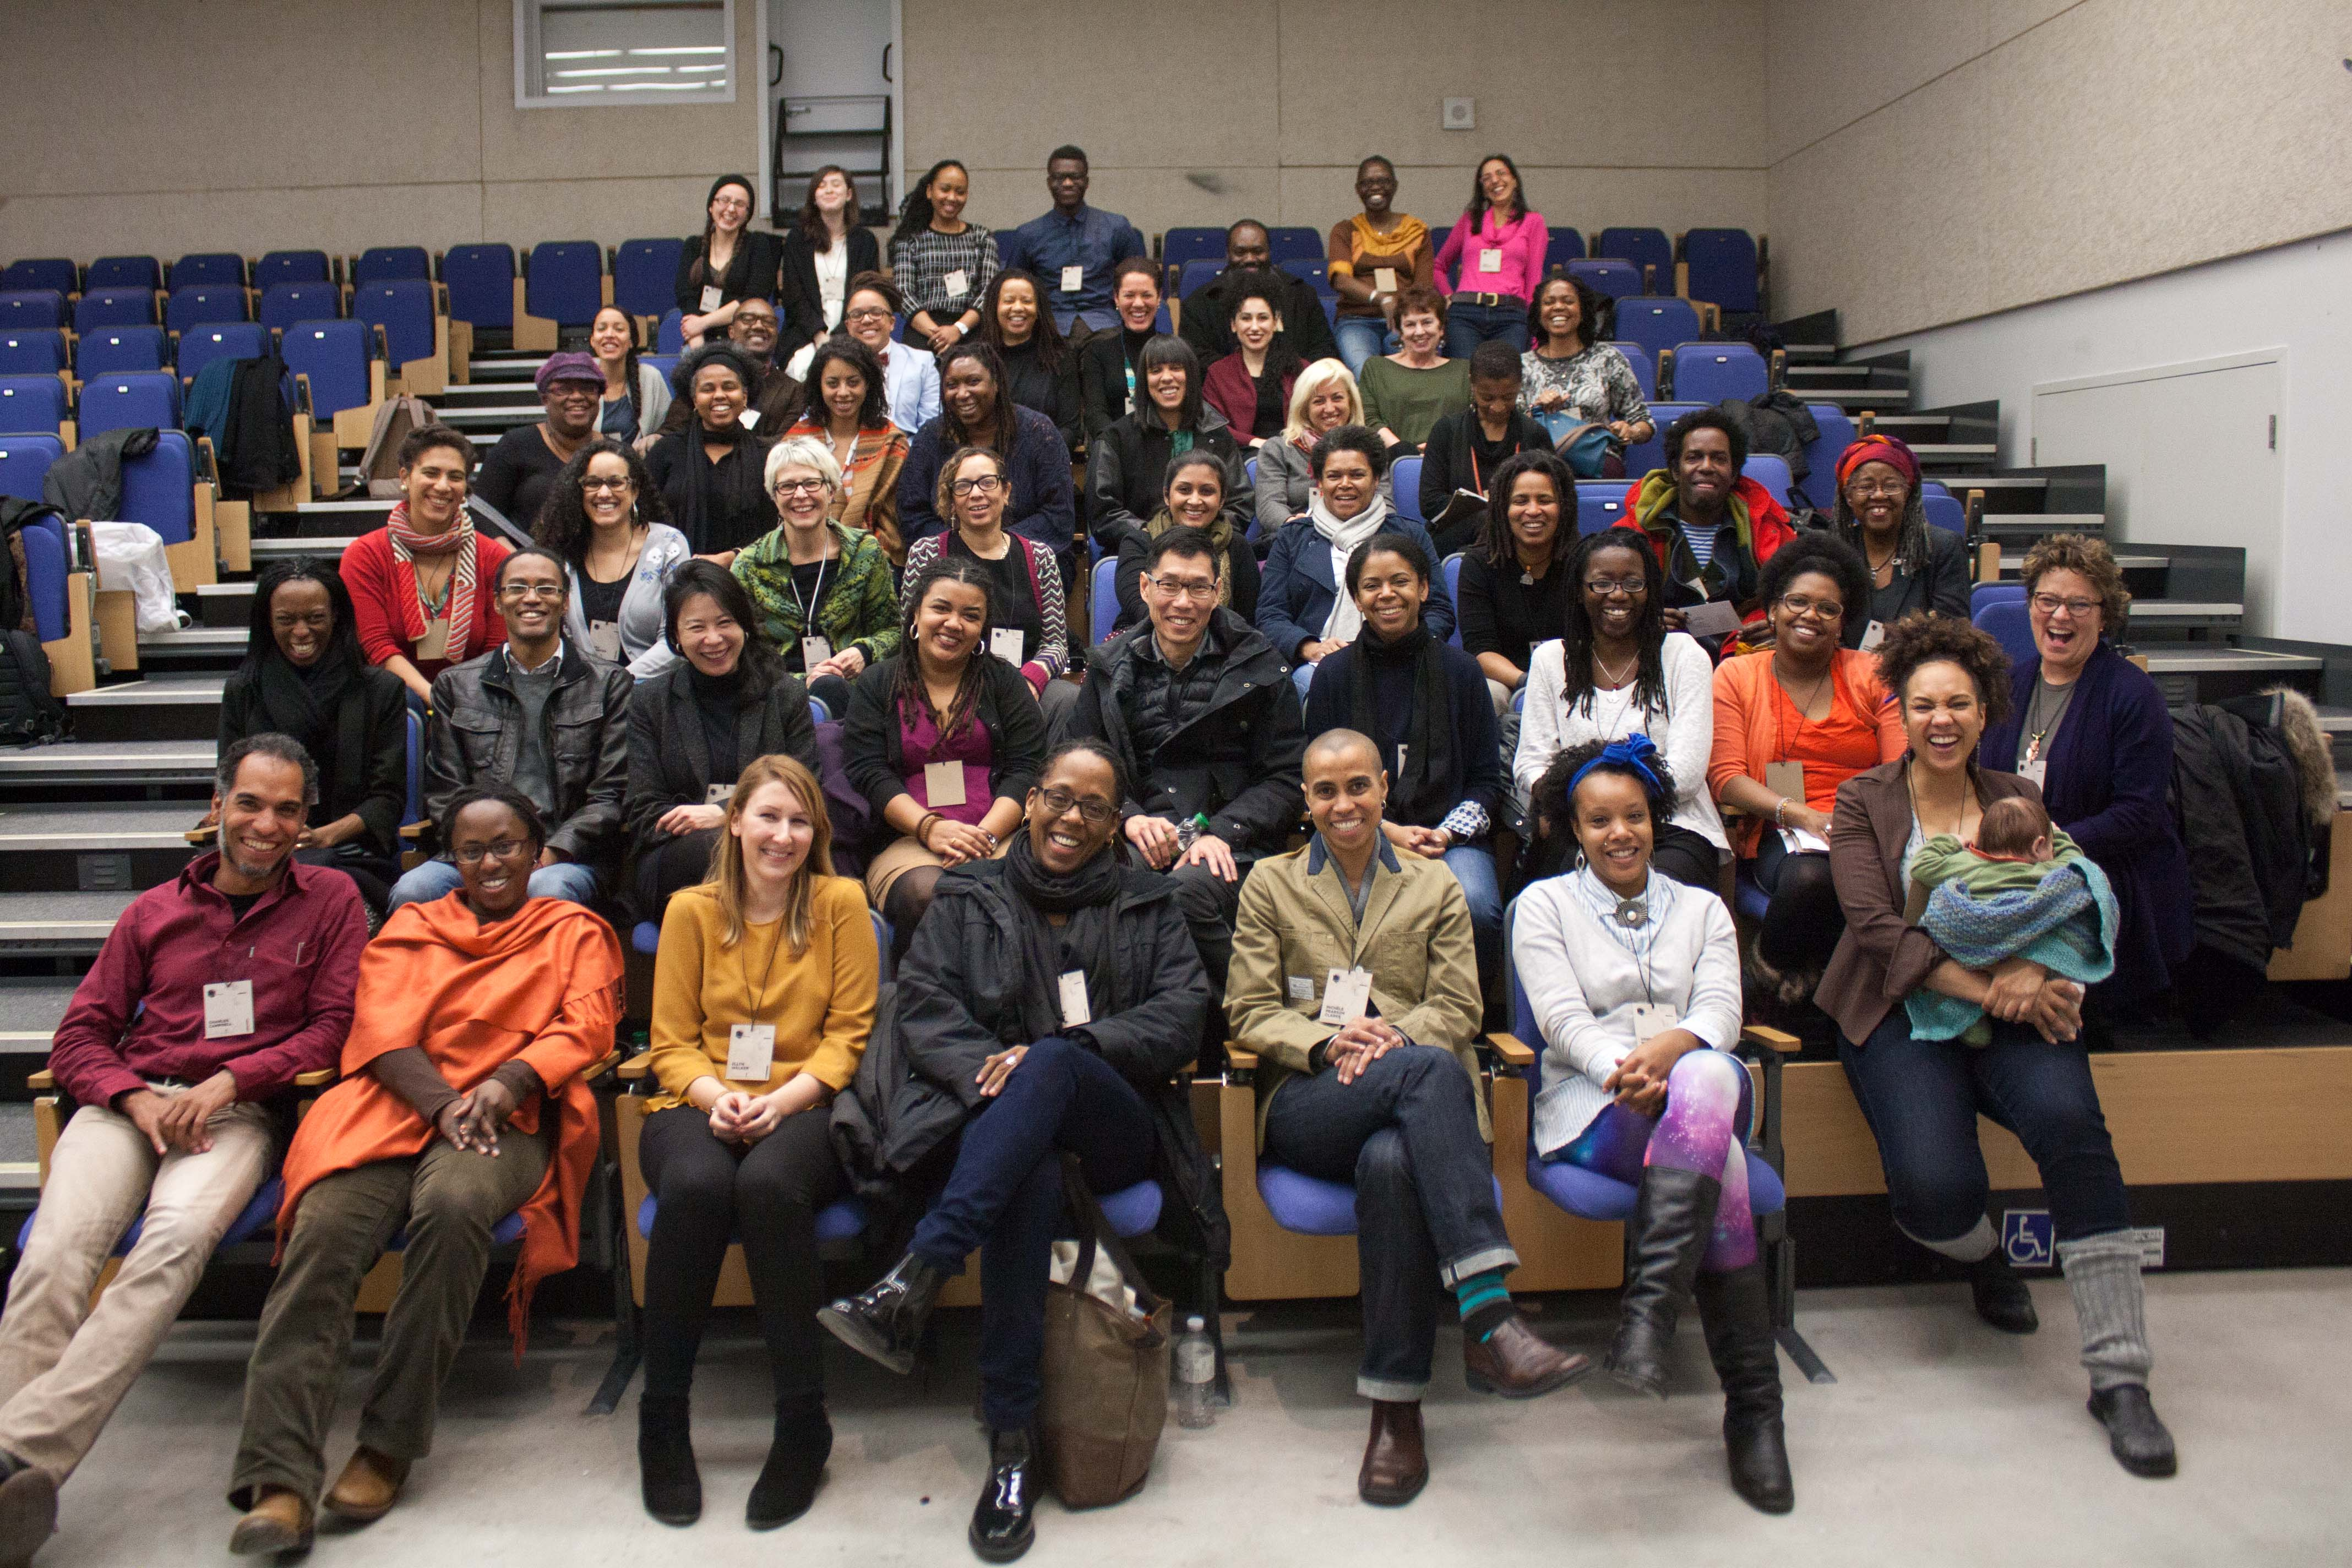 Group photograph of participants at The State of Blackness Conference